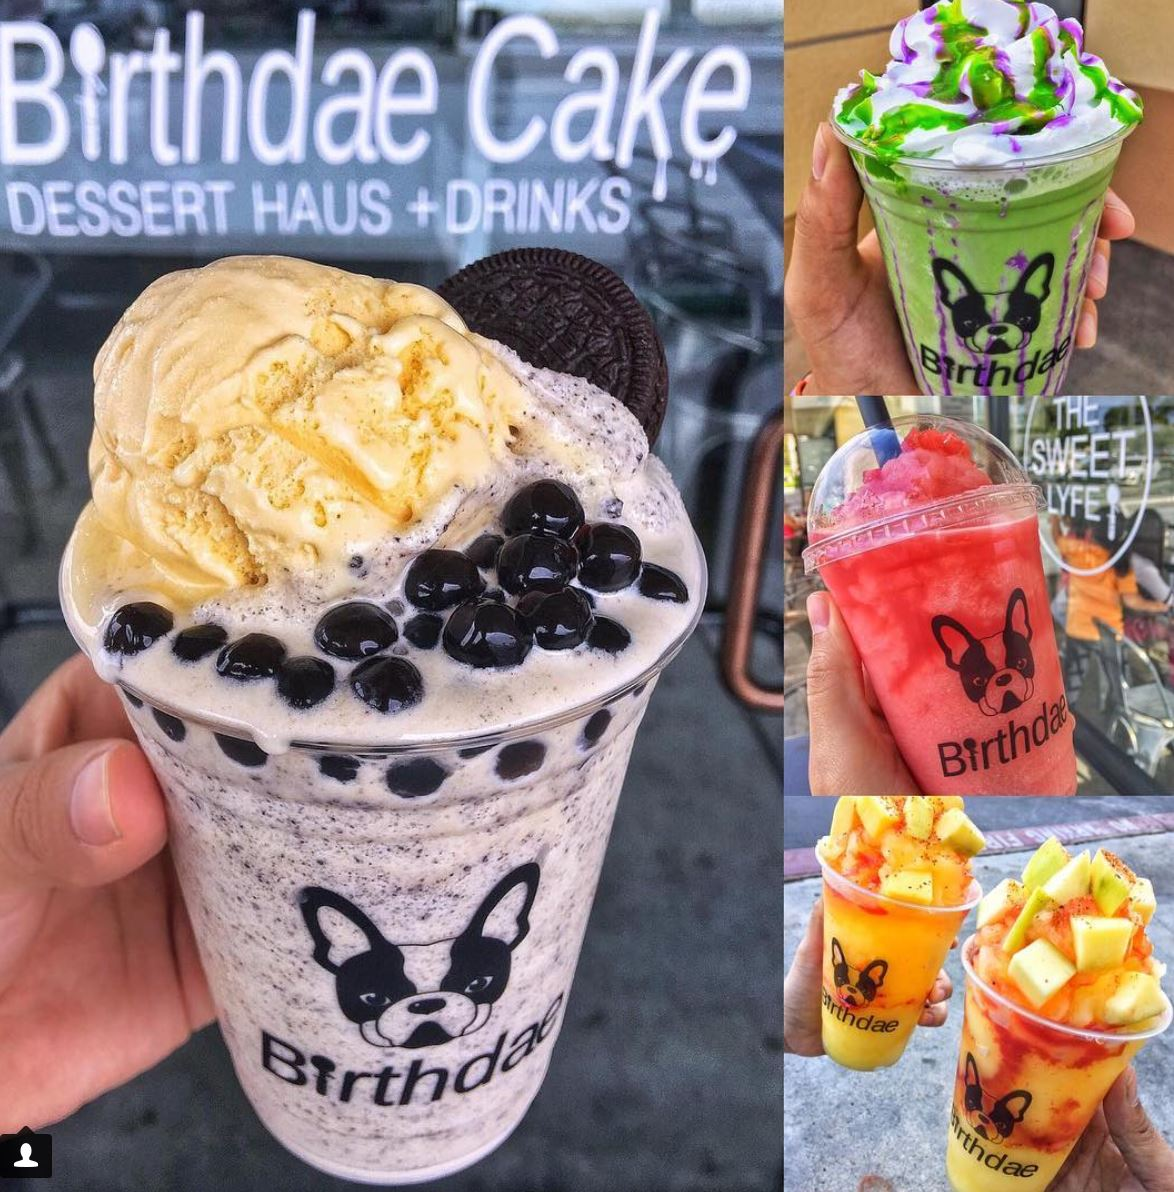 Dec. 15 - 31 | Birthdae Cake in Fountain Valley Offers BOGO FREE On All Blended Drinks!